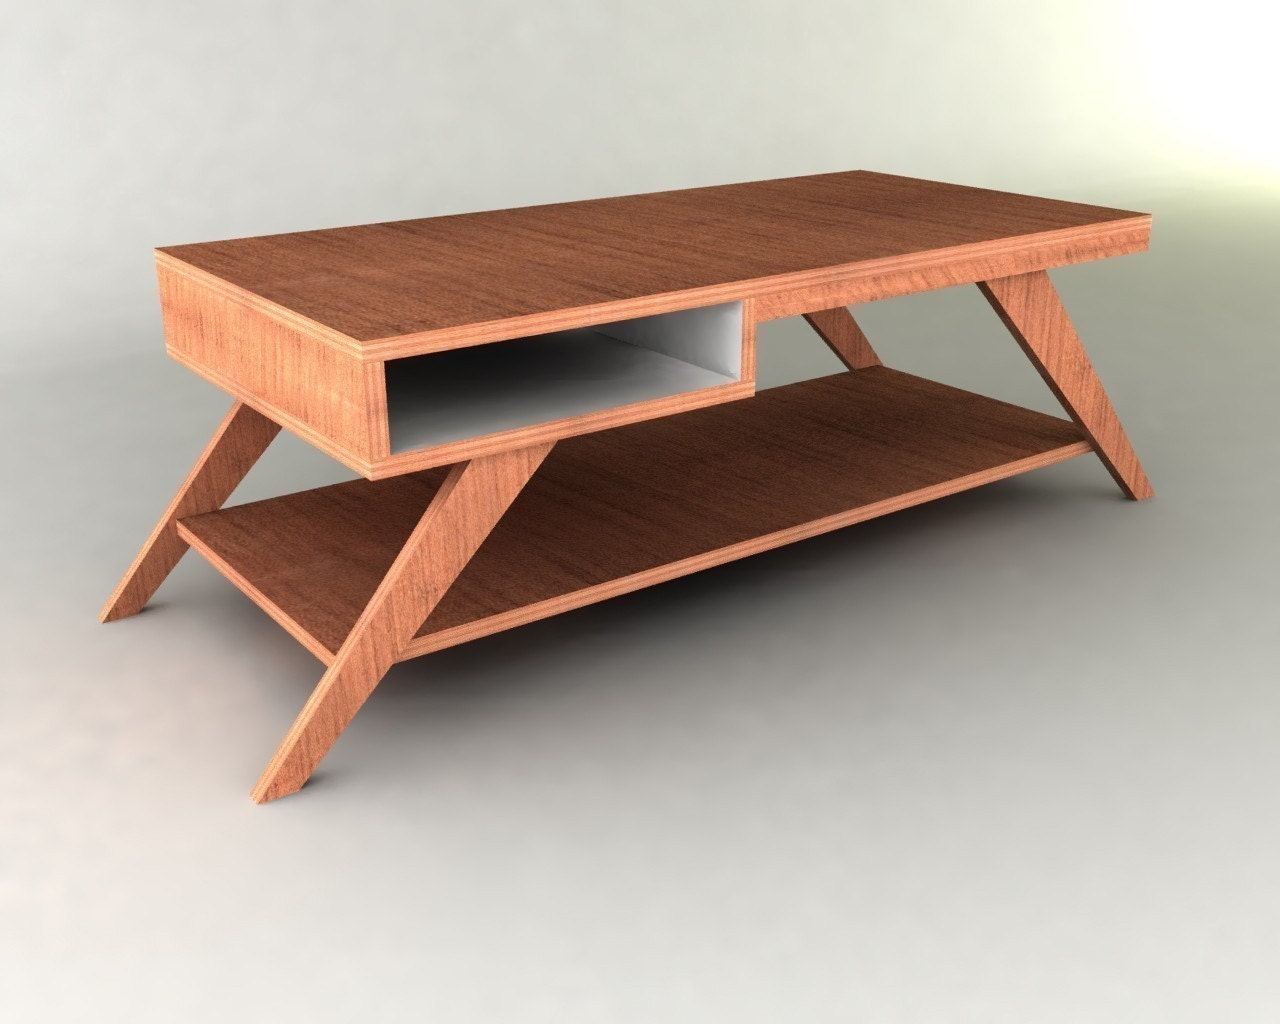 Retro modern eames style coffee table furniture plan for Modern wooden coffee tables